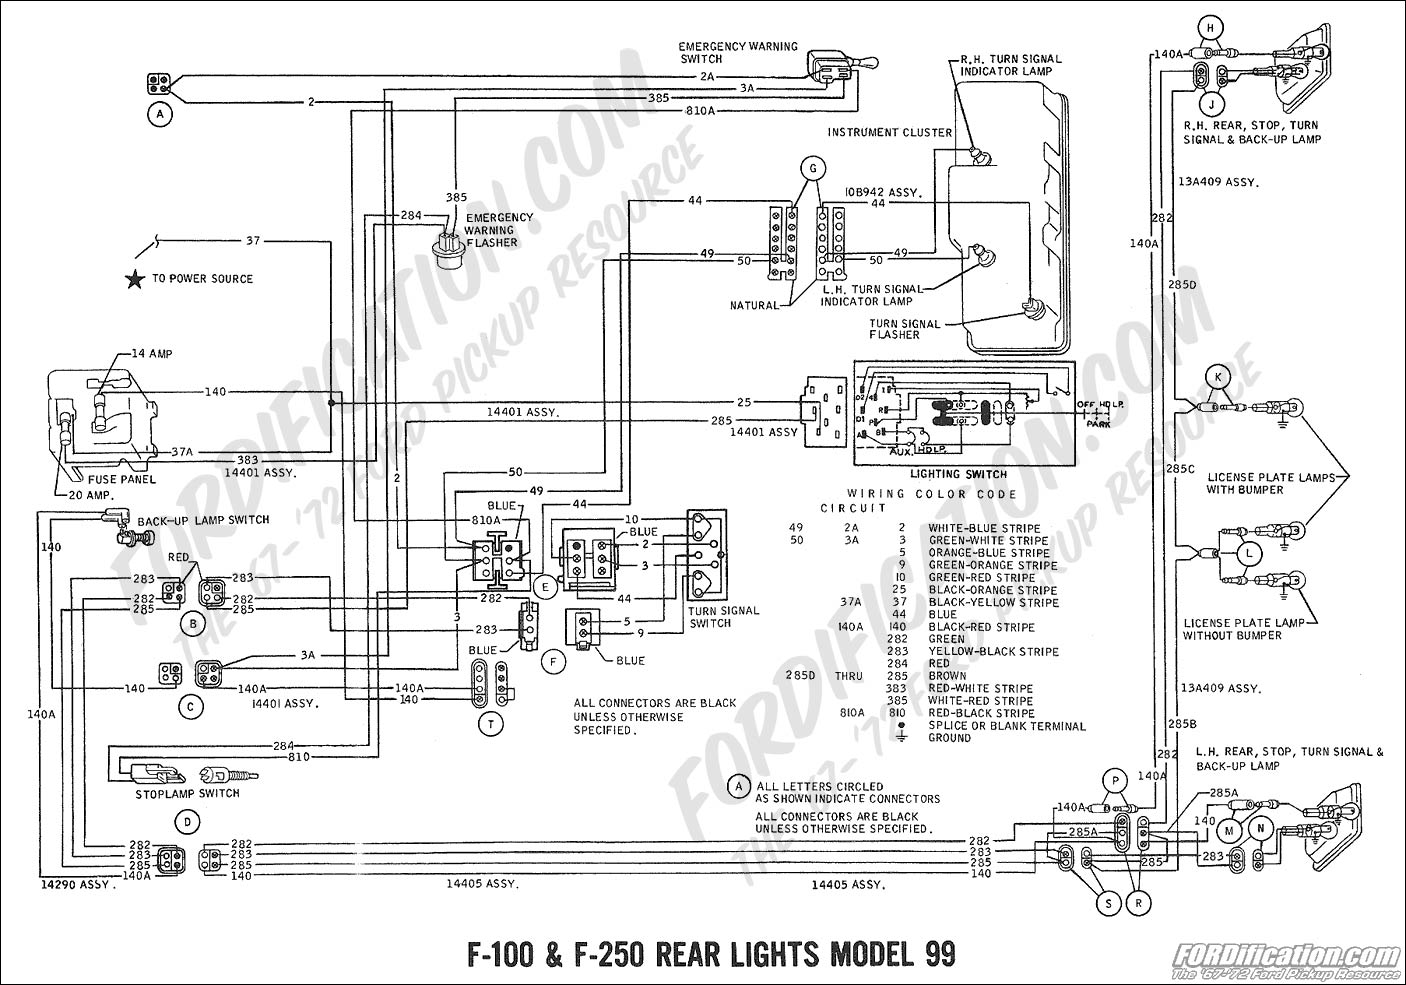 1990 crx radio wiring diagram chevy trailblazer fuse box 1991 honda o2 imageresizertool com